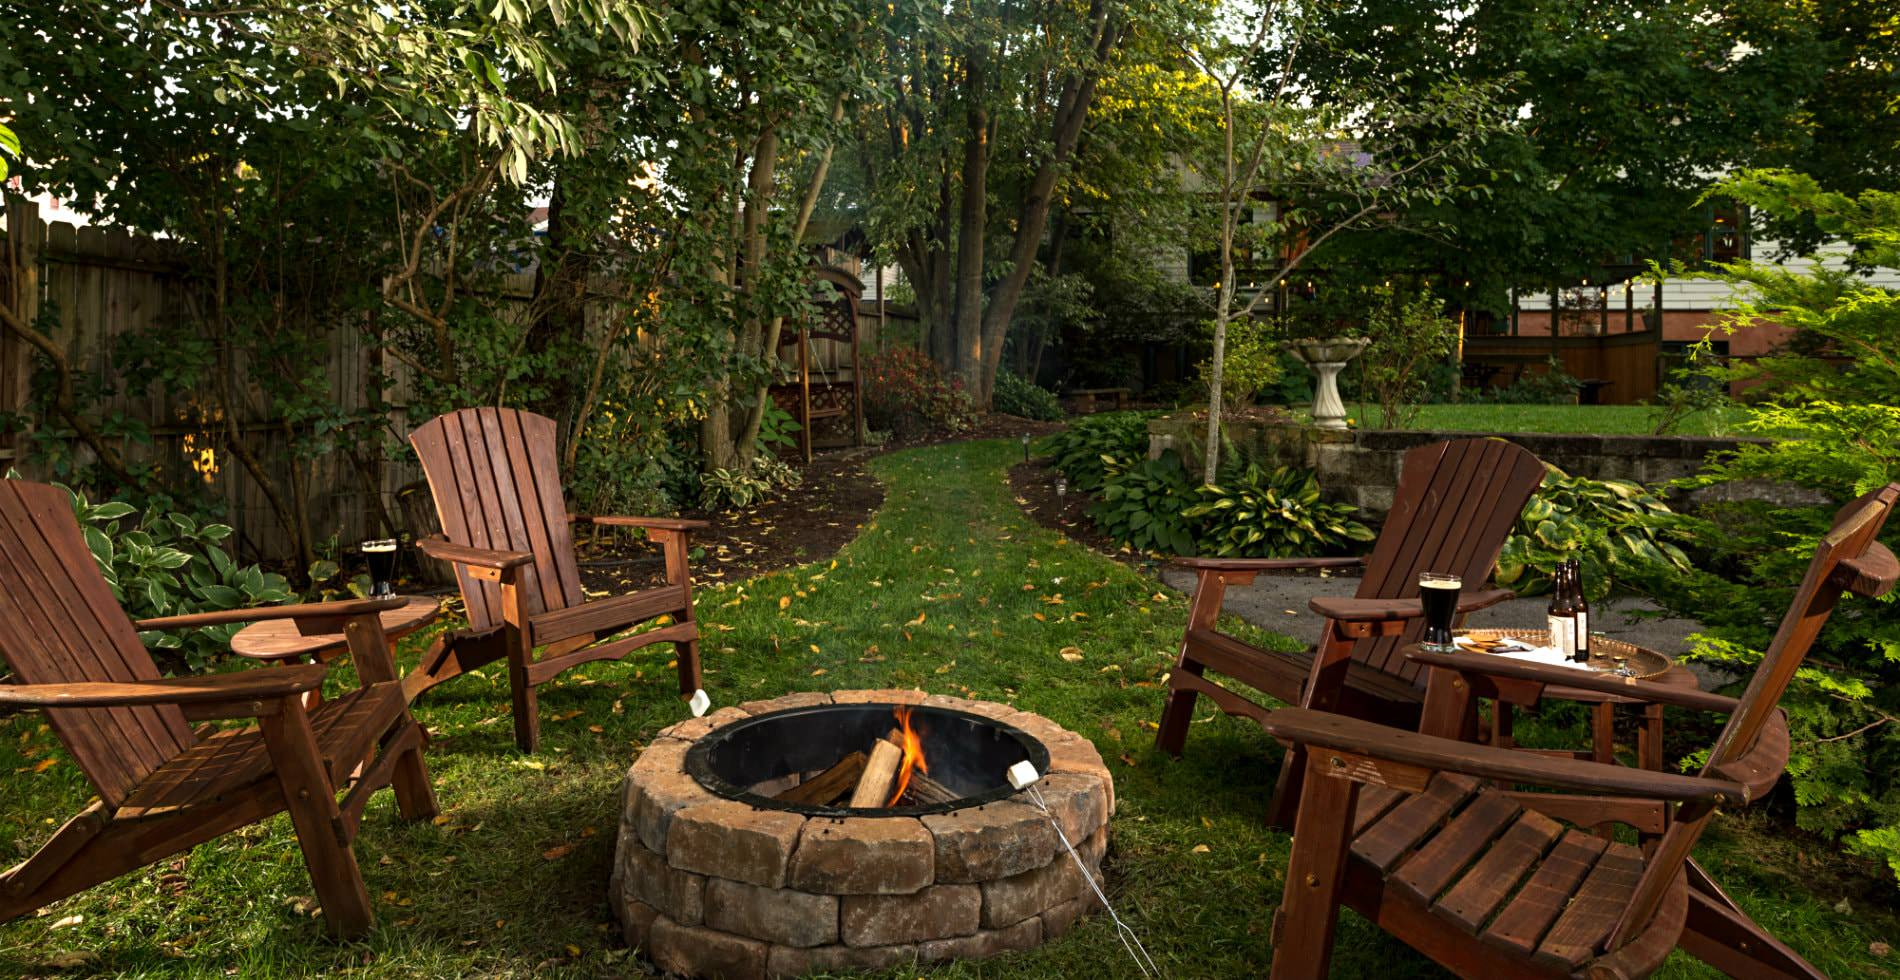 Outside view of a grassy backyard, several lawn chairs around a stone fireplace, a green path leading away from scene